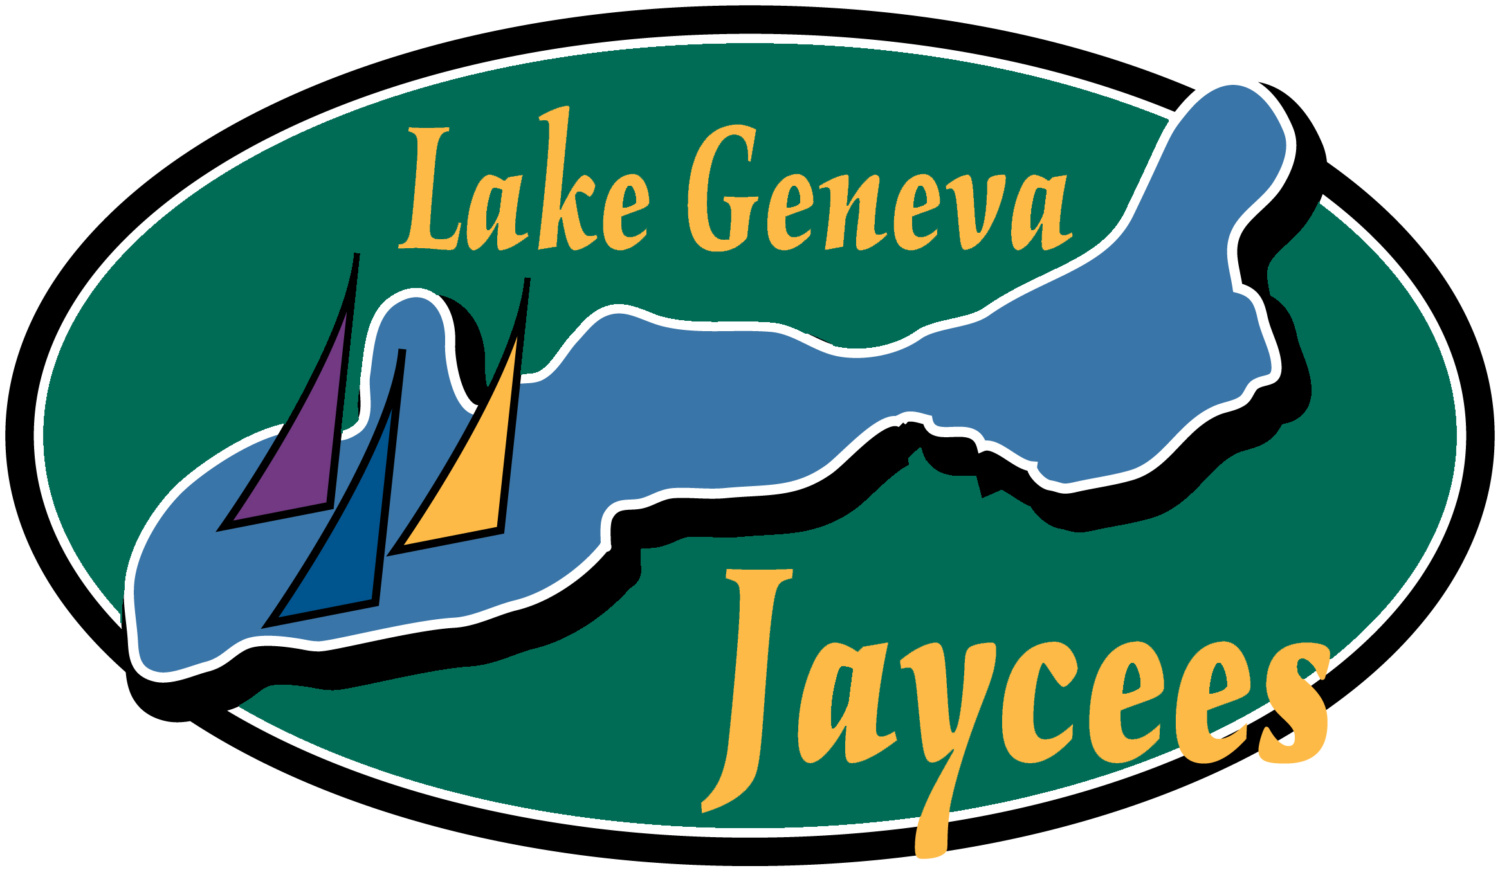 Joint Board Meeting - Lake Geneva Jaycees